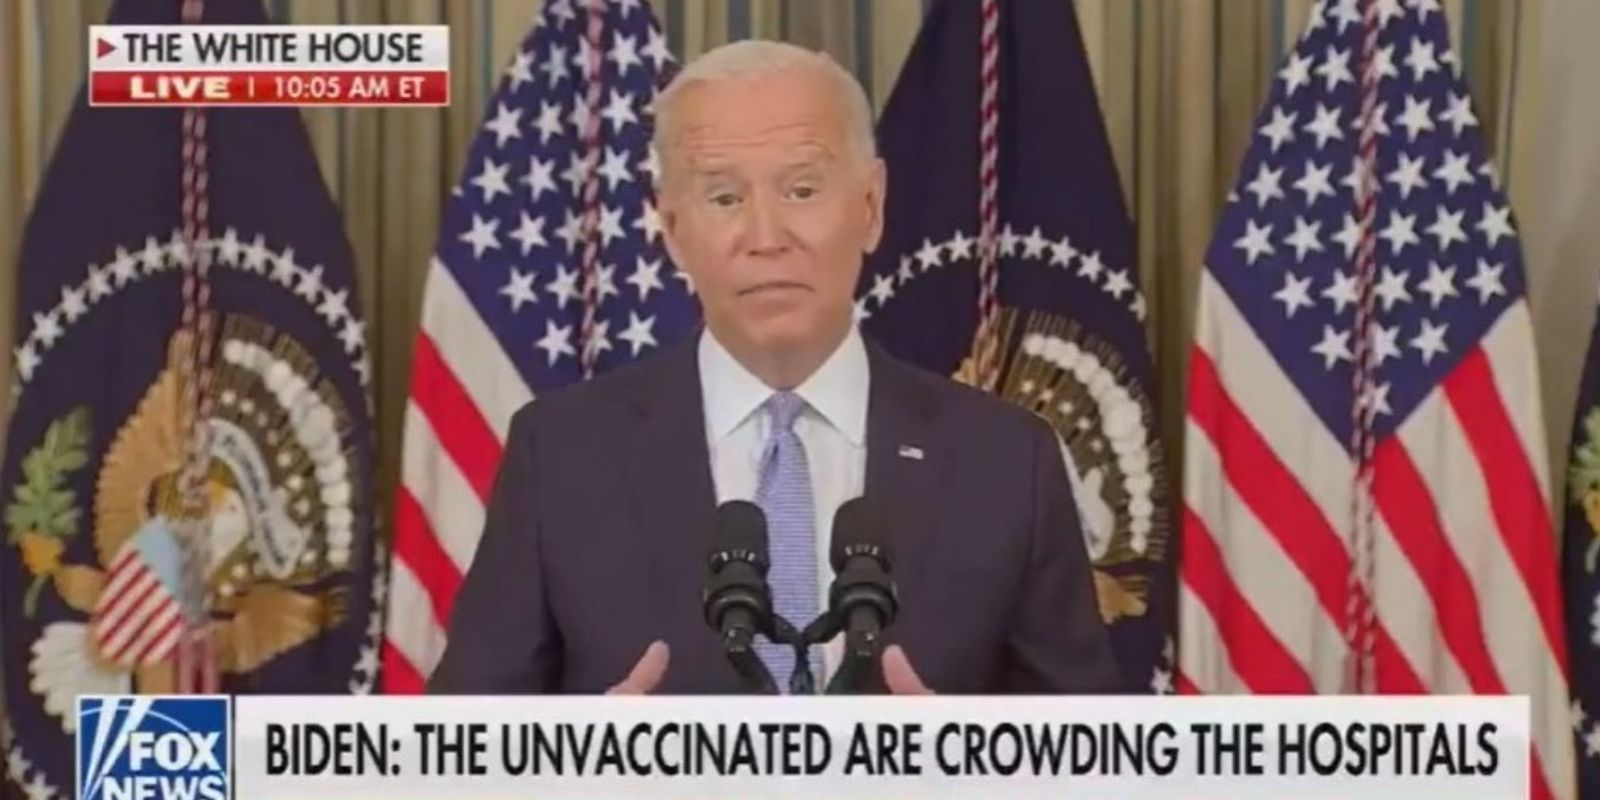 WATCH: Biden says he's 'moving forward with vaccination requirements wherever' he can